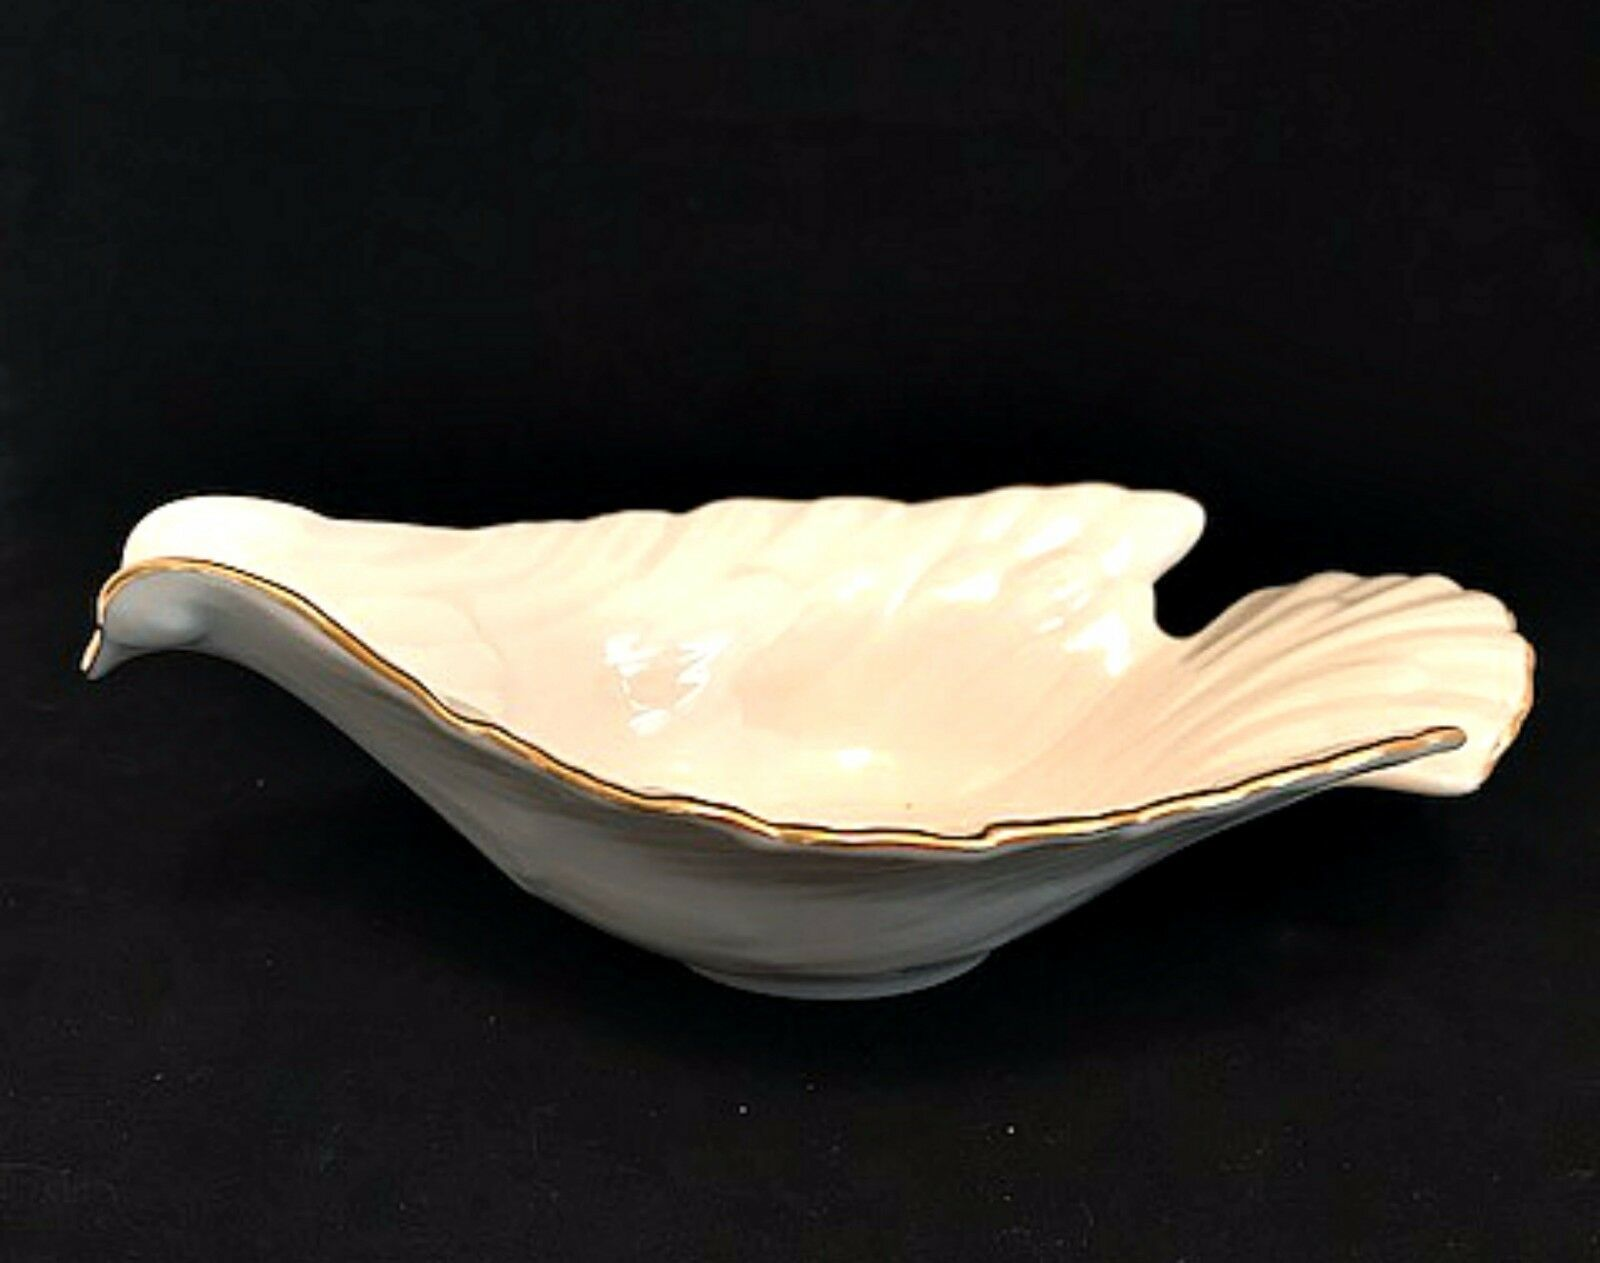 Lenox Dove Candy Nut Dish Ivory 24K Gold Trim Made in USA 7.75 inches Long - $34.64